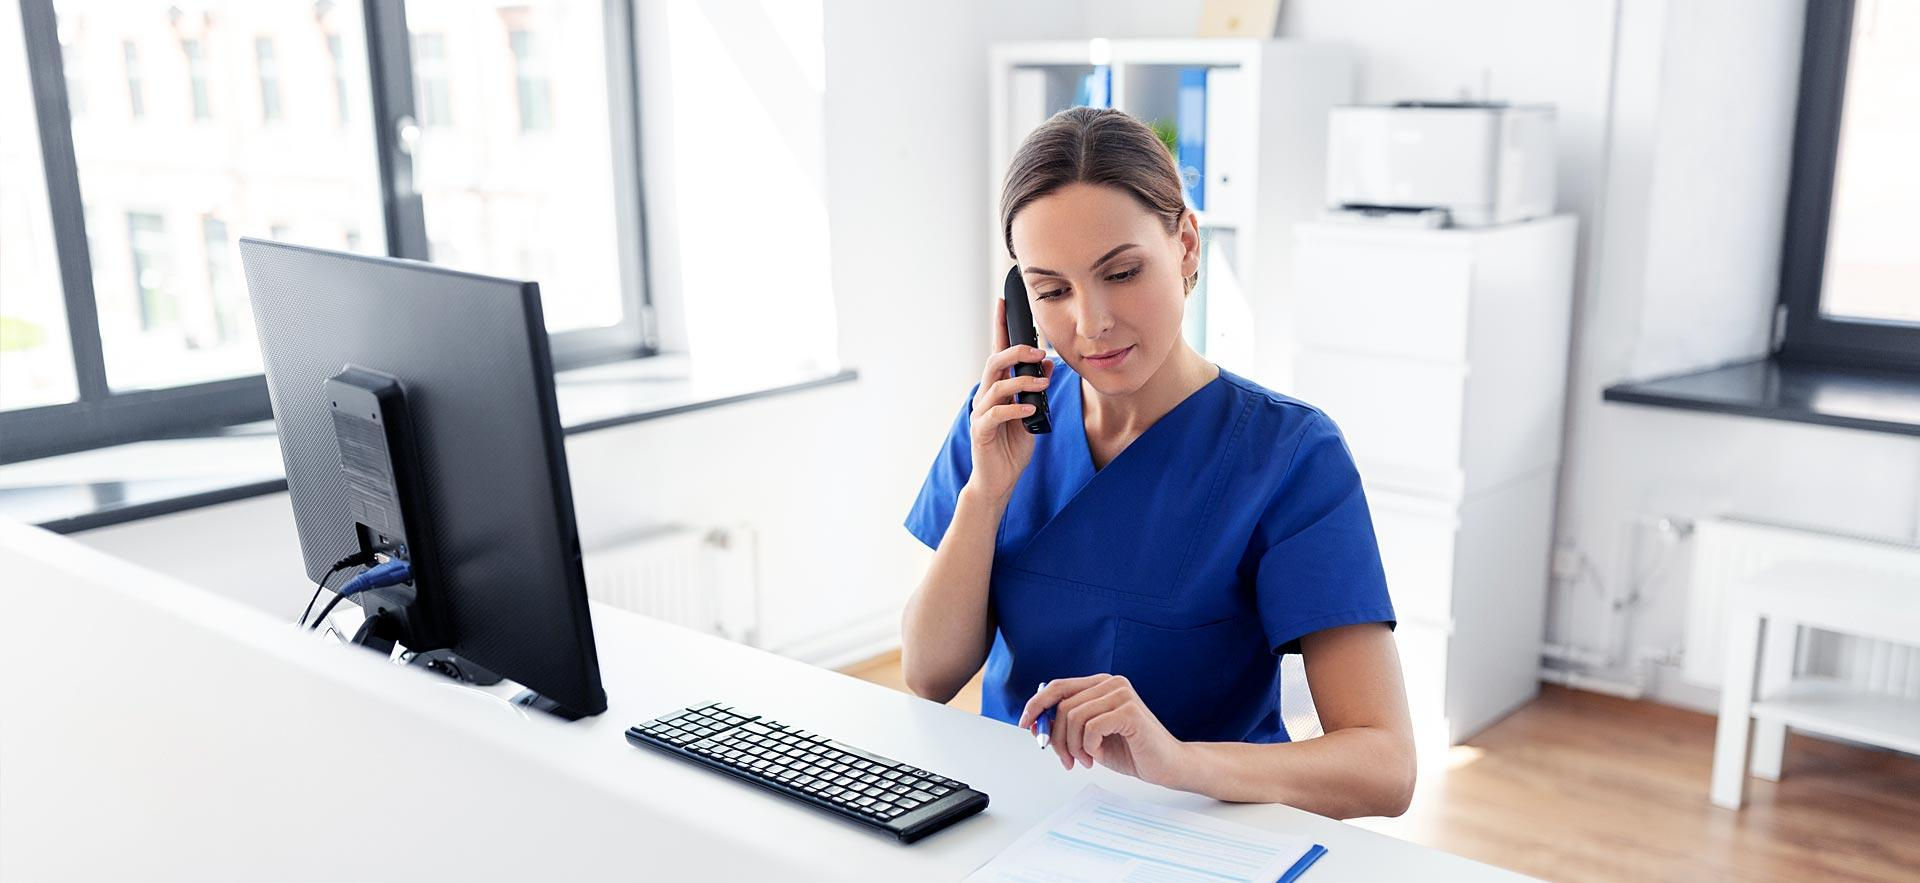 Female health office worker answers phone at her desk.